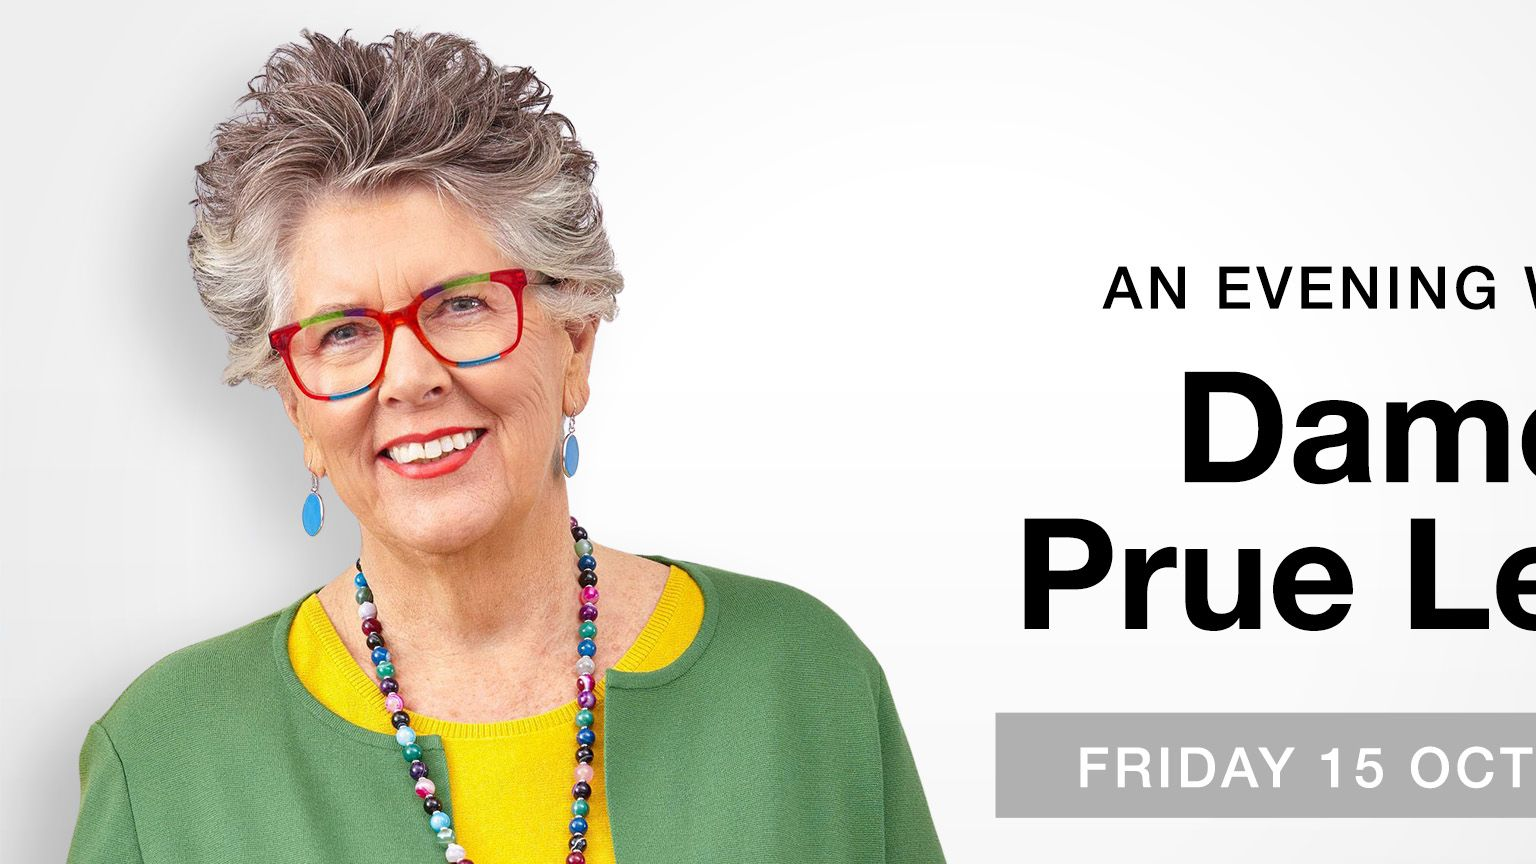 an-evening-with-prue-leith